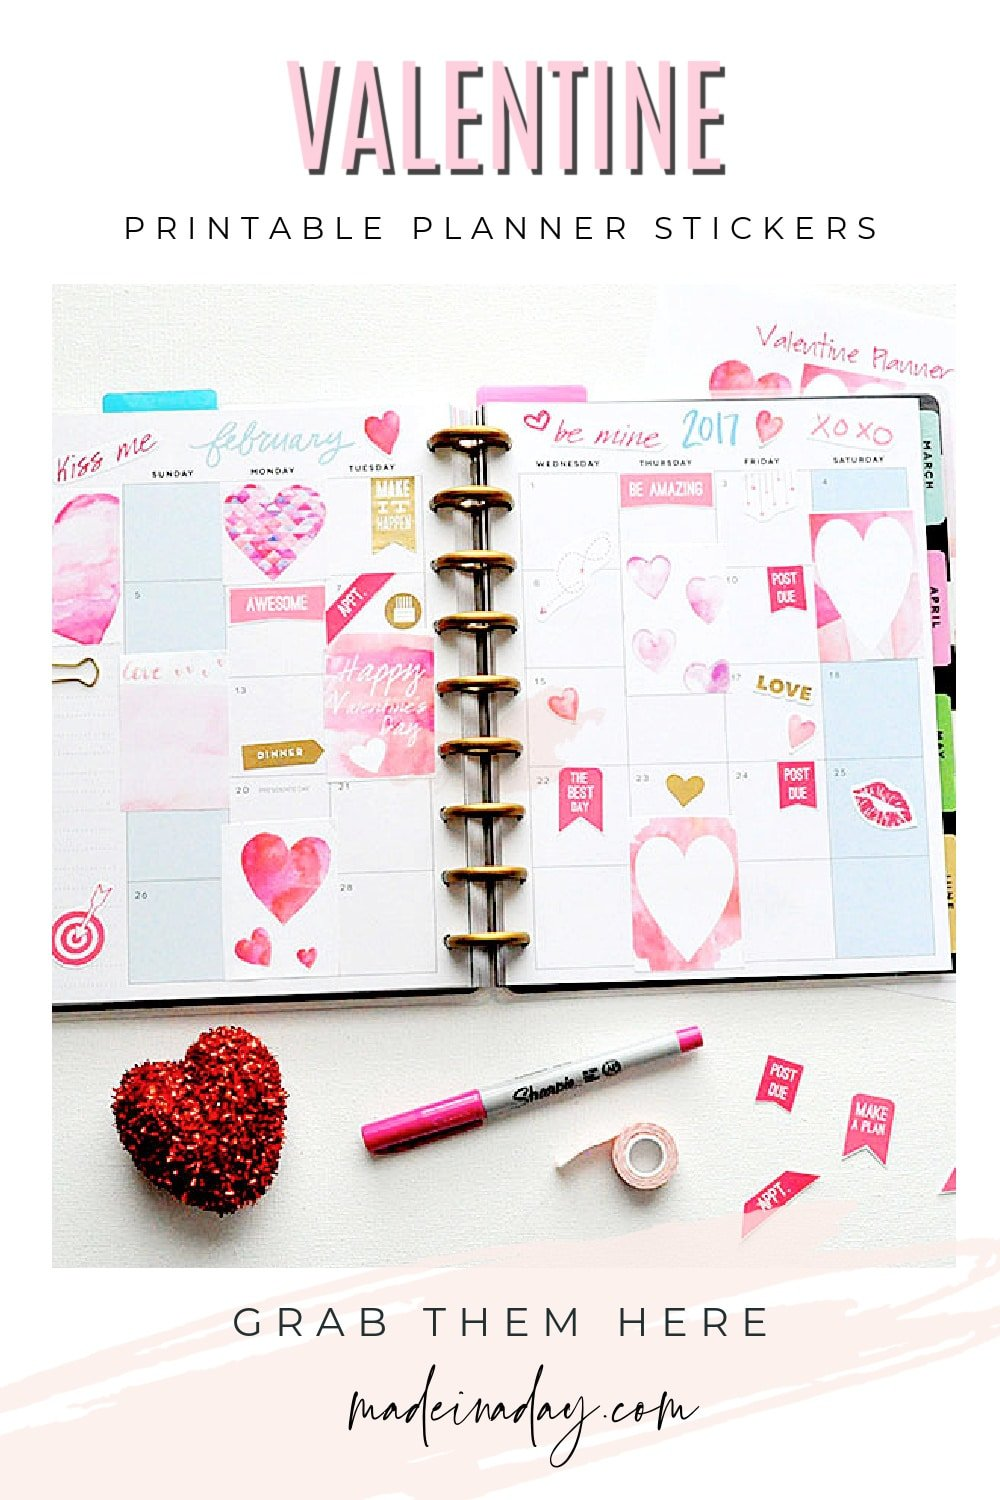 Watercolor Valentine Printable Planner Stickers